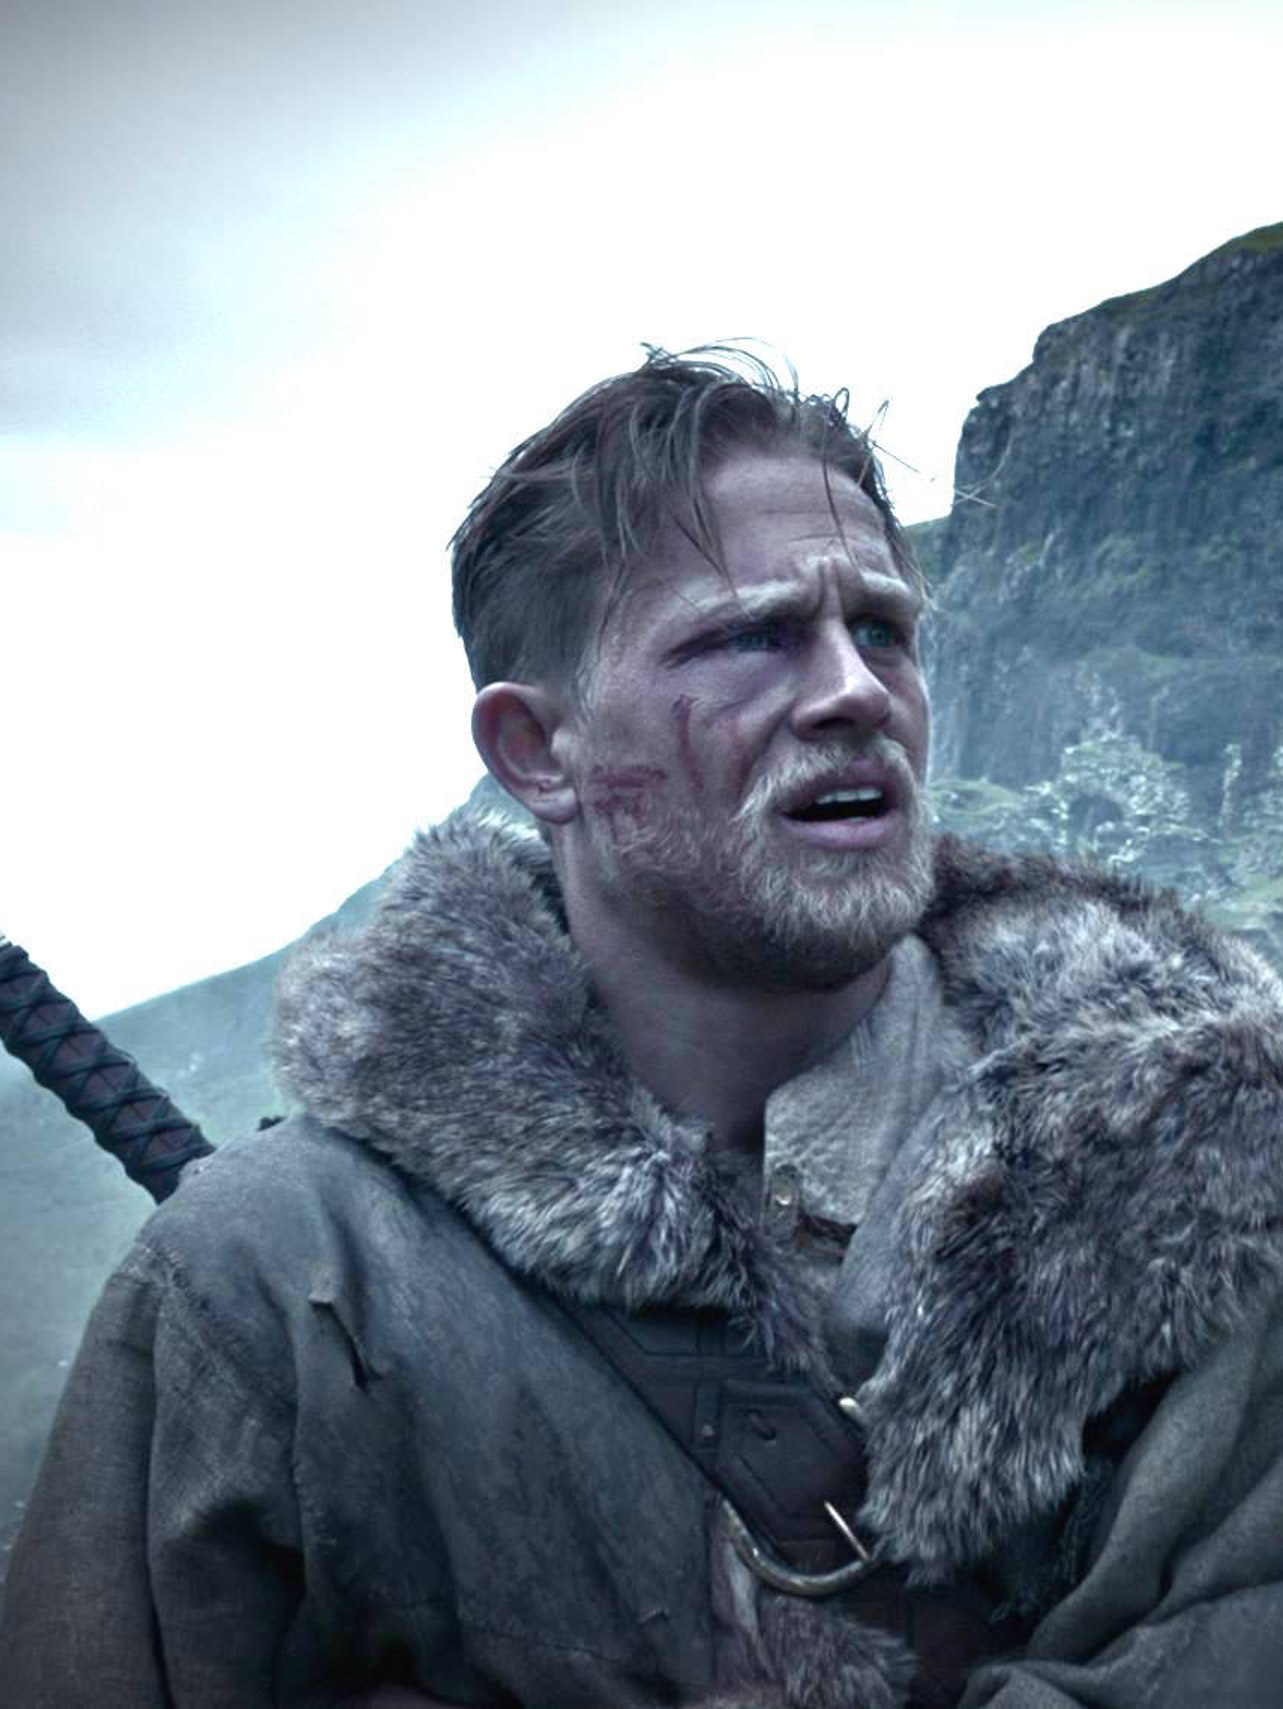 Charlie Hunnam in Guy Ritchie's King Arthur